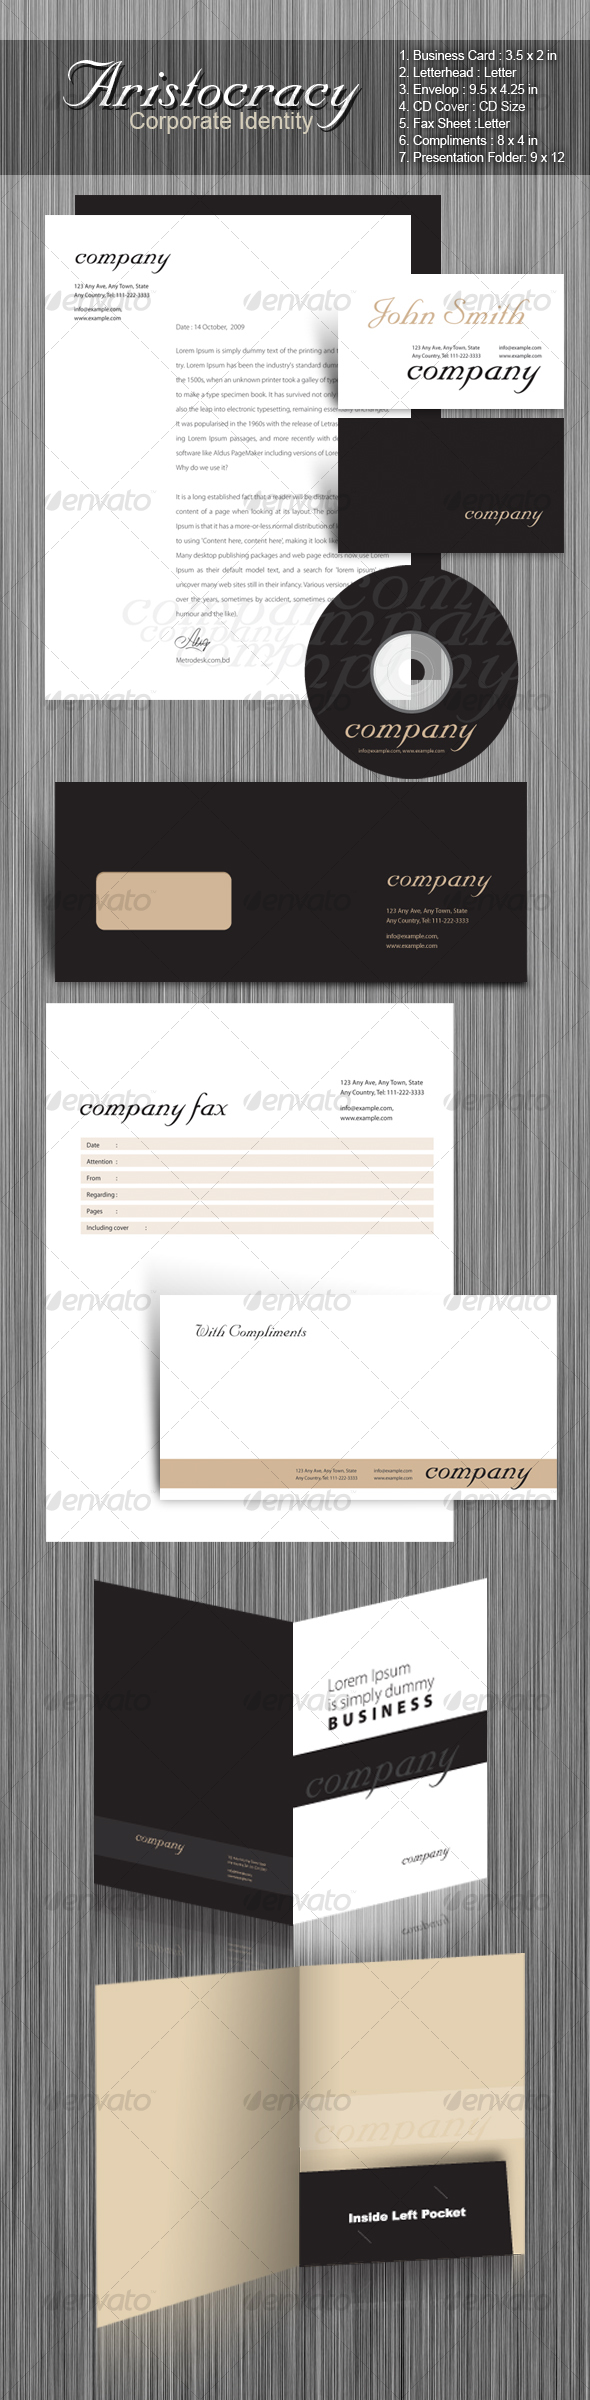 Aristocracy Corporate Identity - Stationery Print Templates